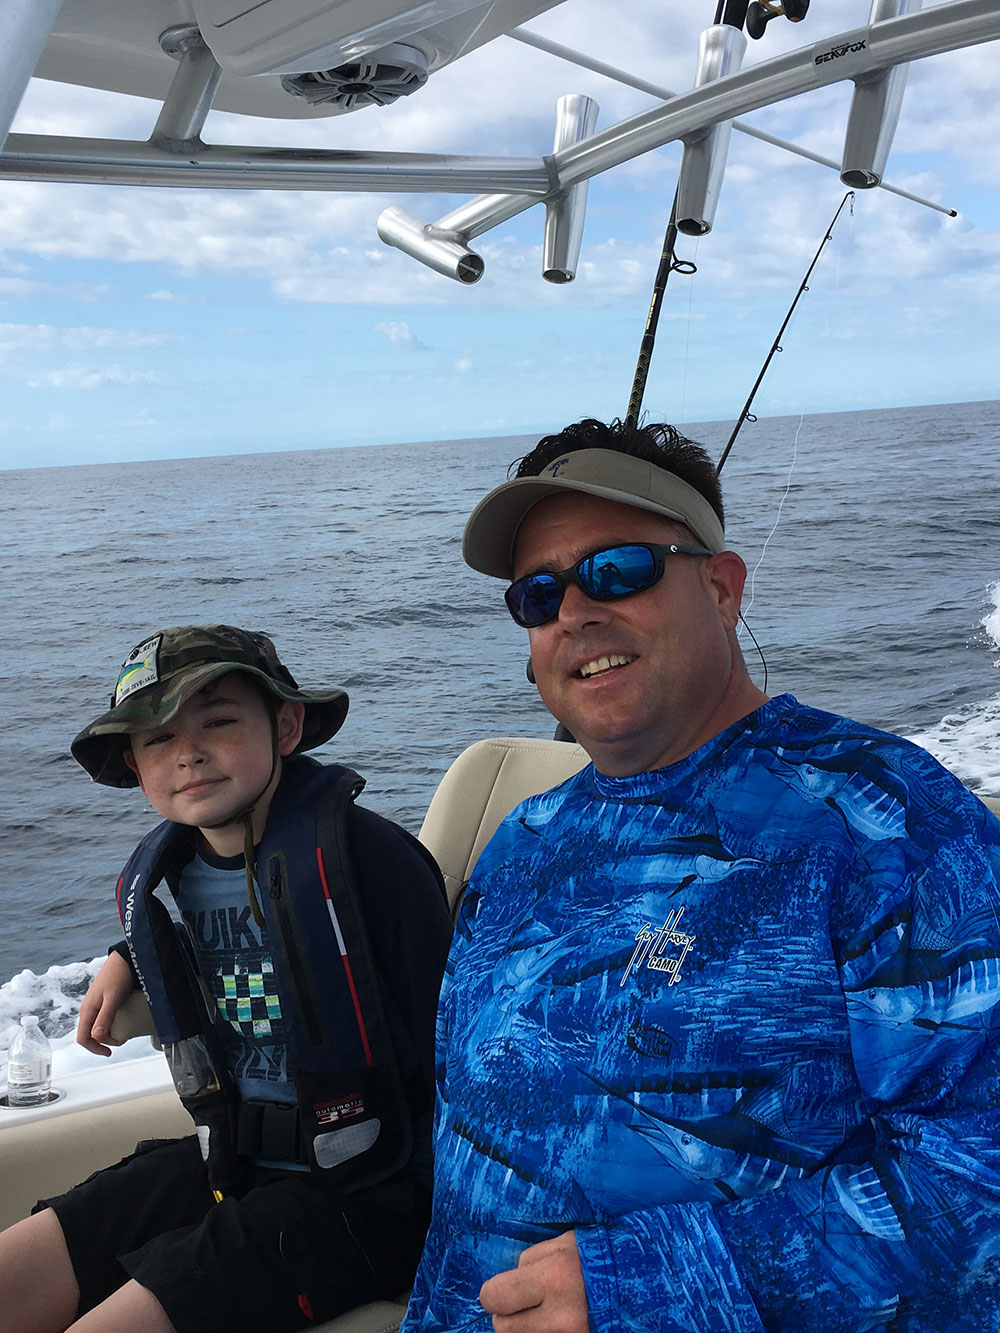 Chris Worth and child sitting on the boat smiling